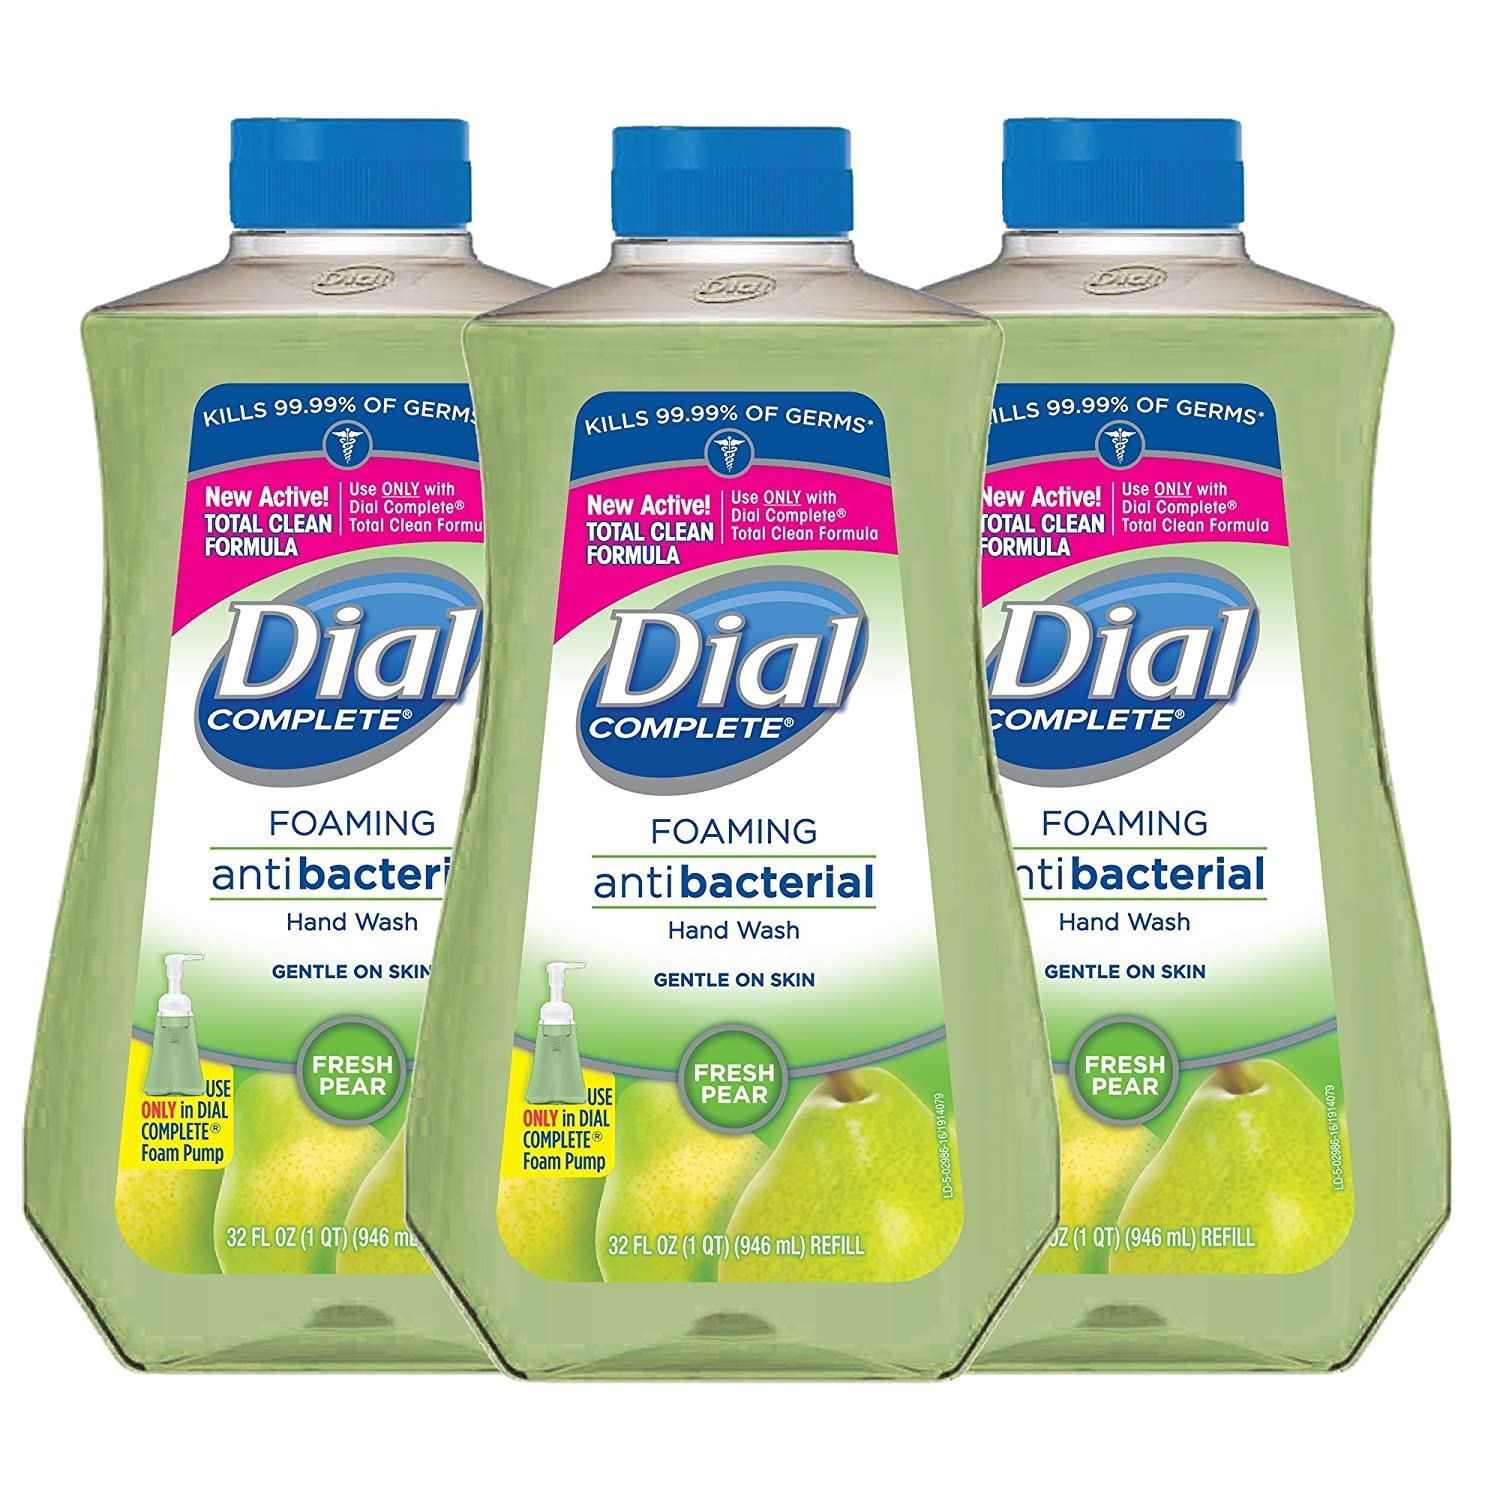 Dial Complete Antibacterial Foaming Hand Wash Refill, Soothing White Tea, 32 Fluid Ounces